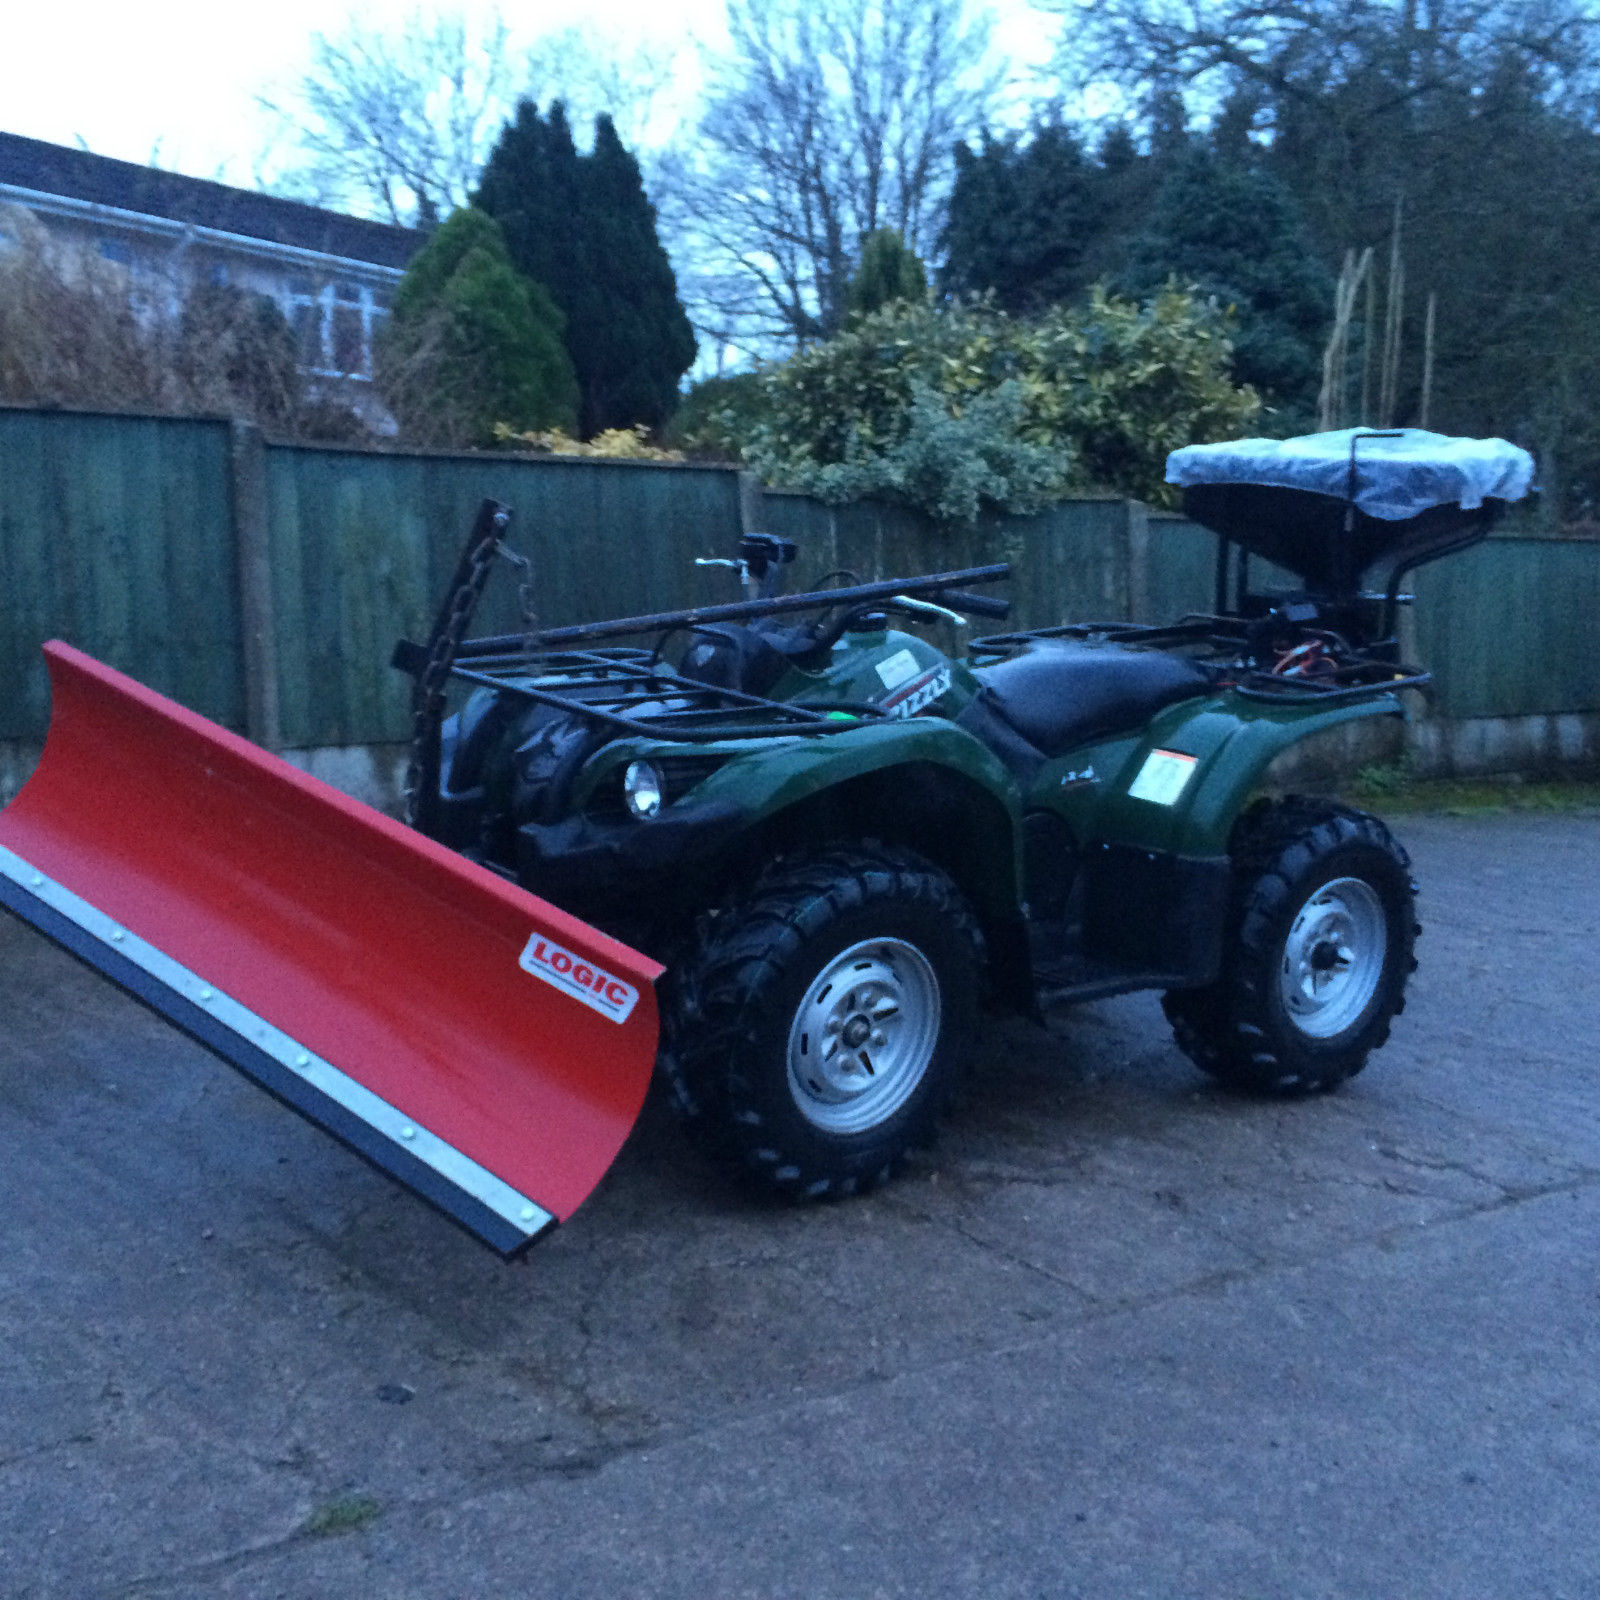 Yamaha 450 Grizzly Atv Quad Bike Complete With Snow Plough Salt